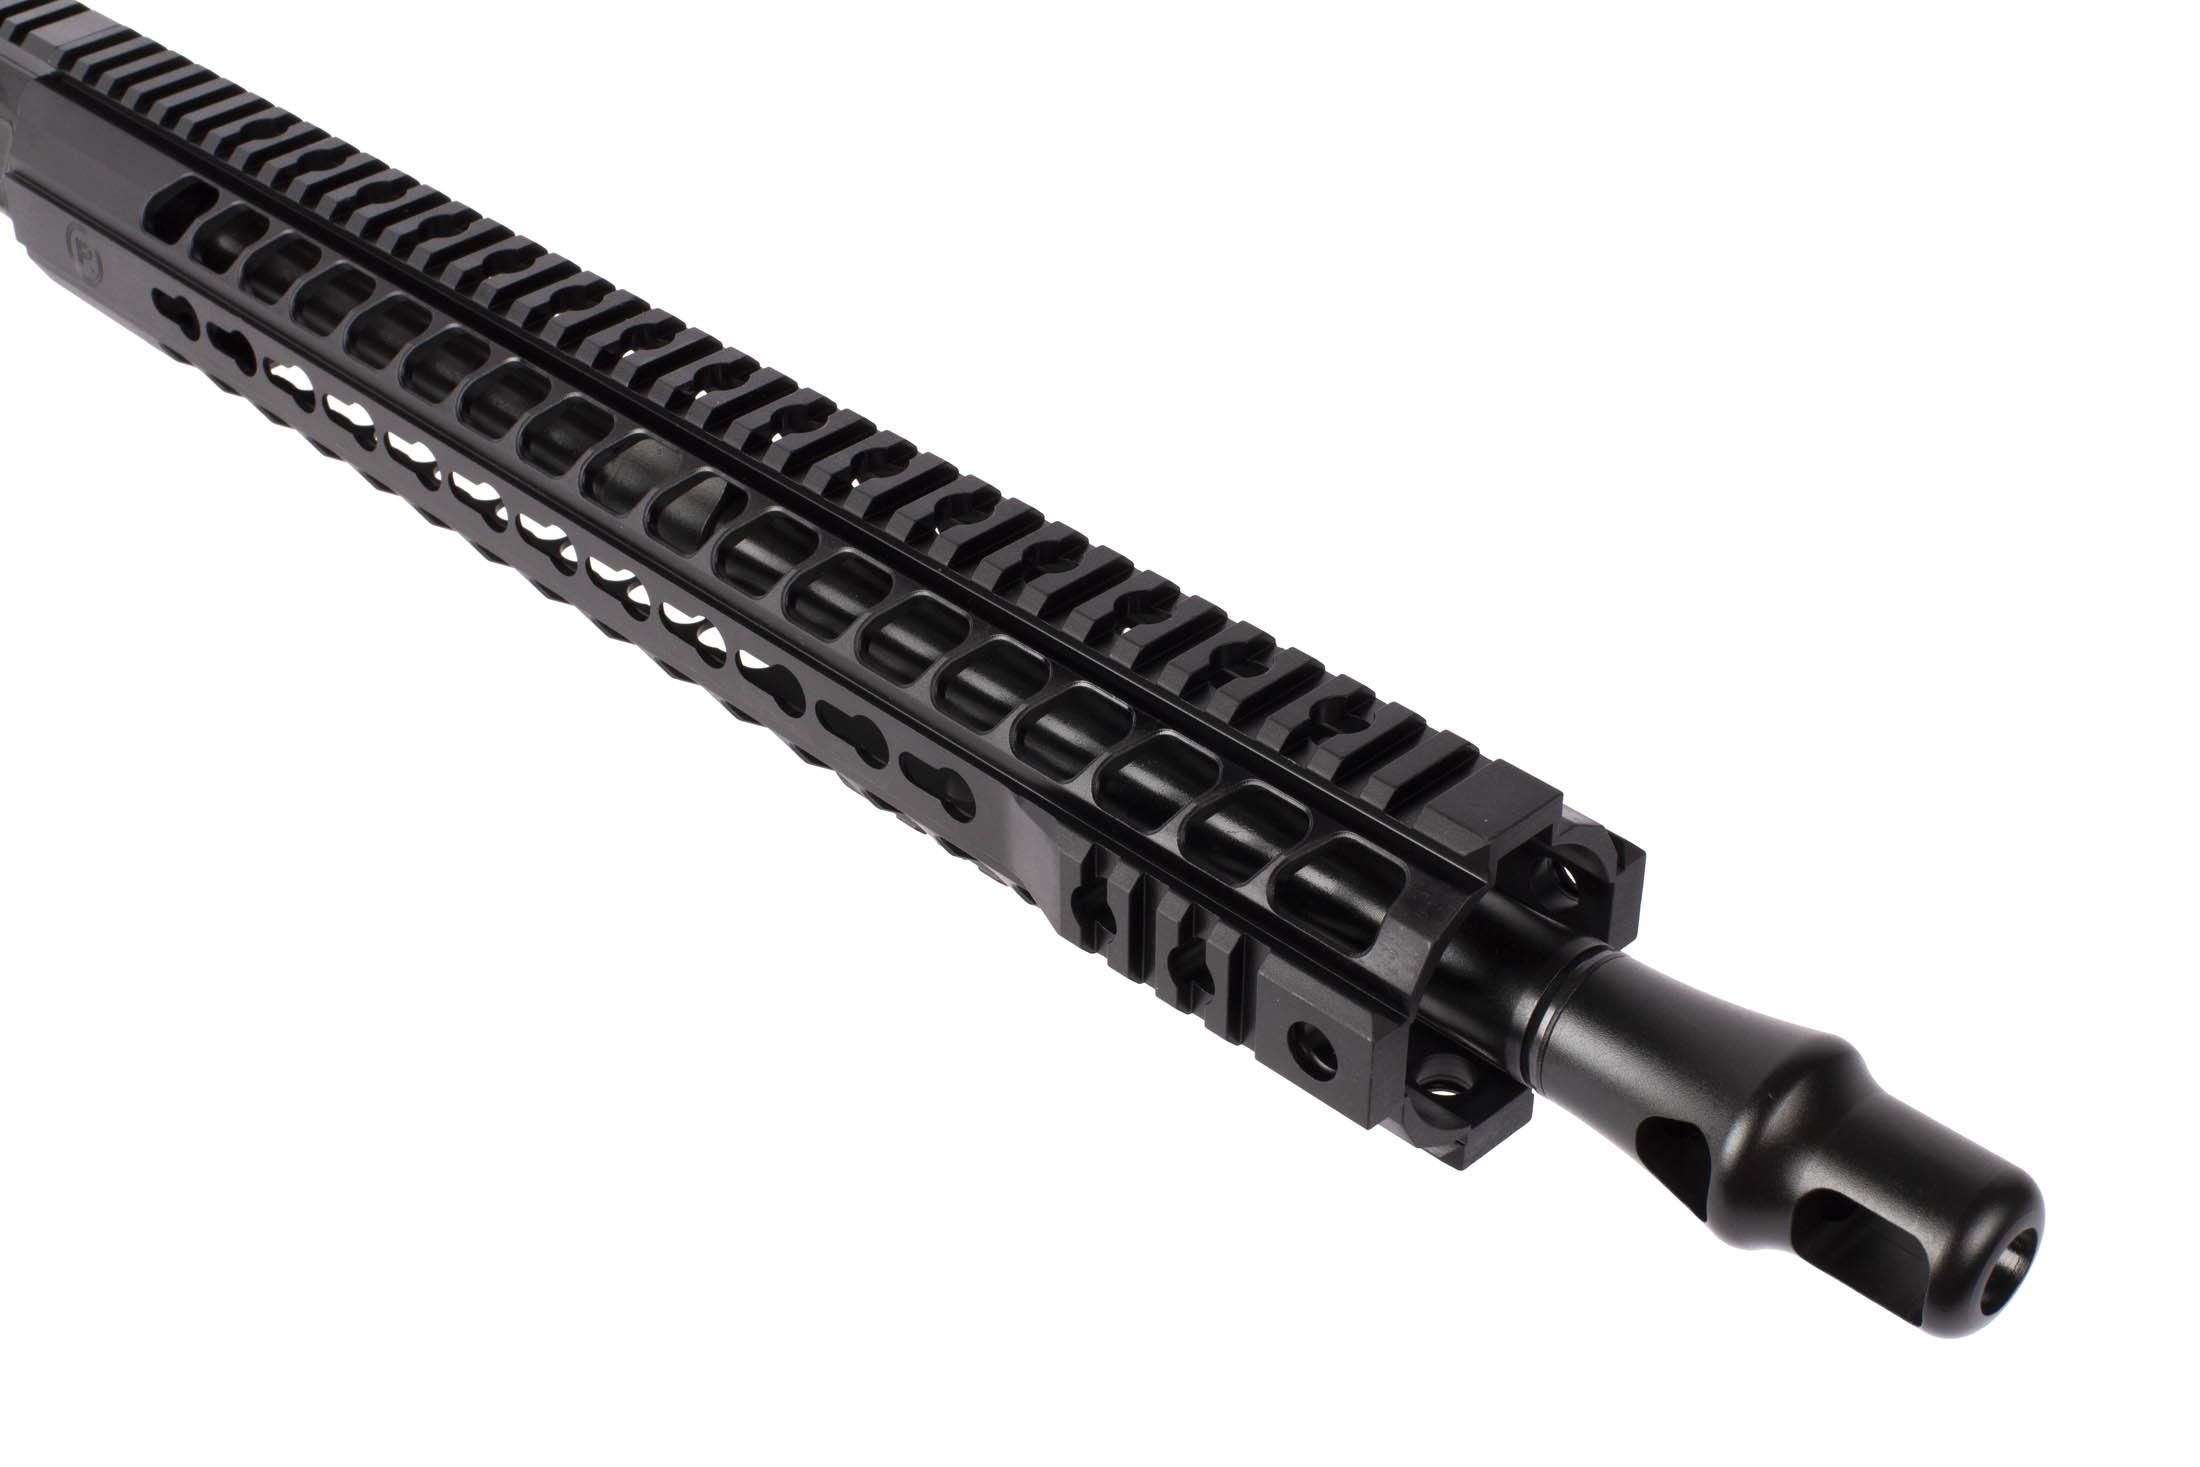 Radical Firearms .458 SOCOM complete AR-15's 16in barrel has a Panzer style muzzle brake.